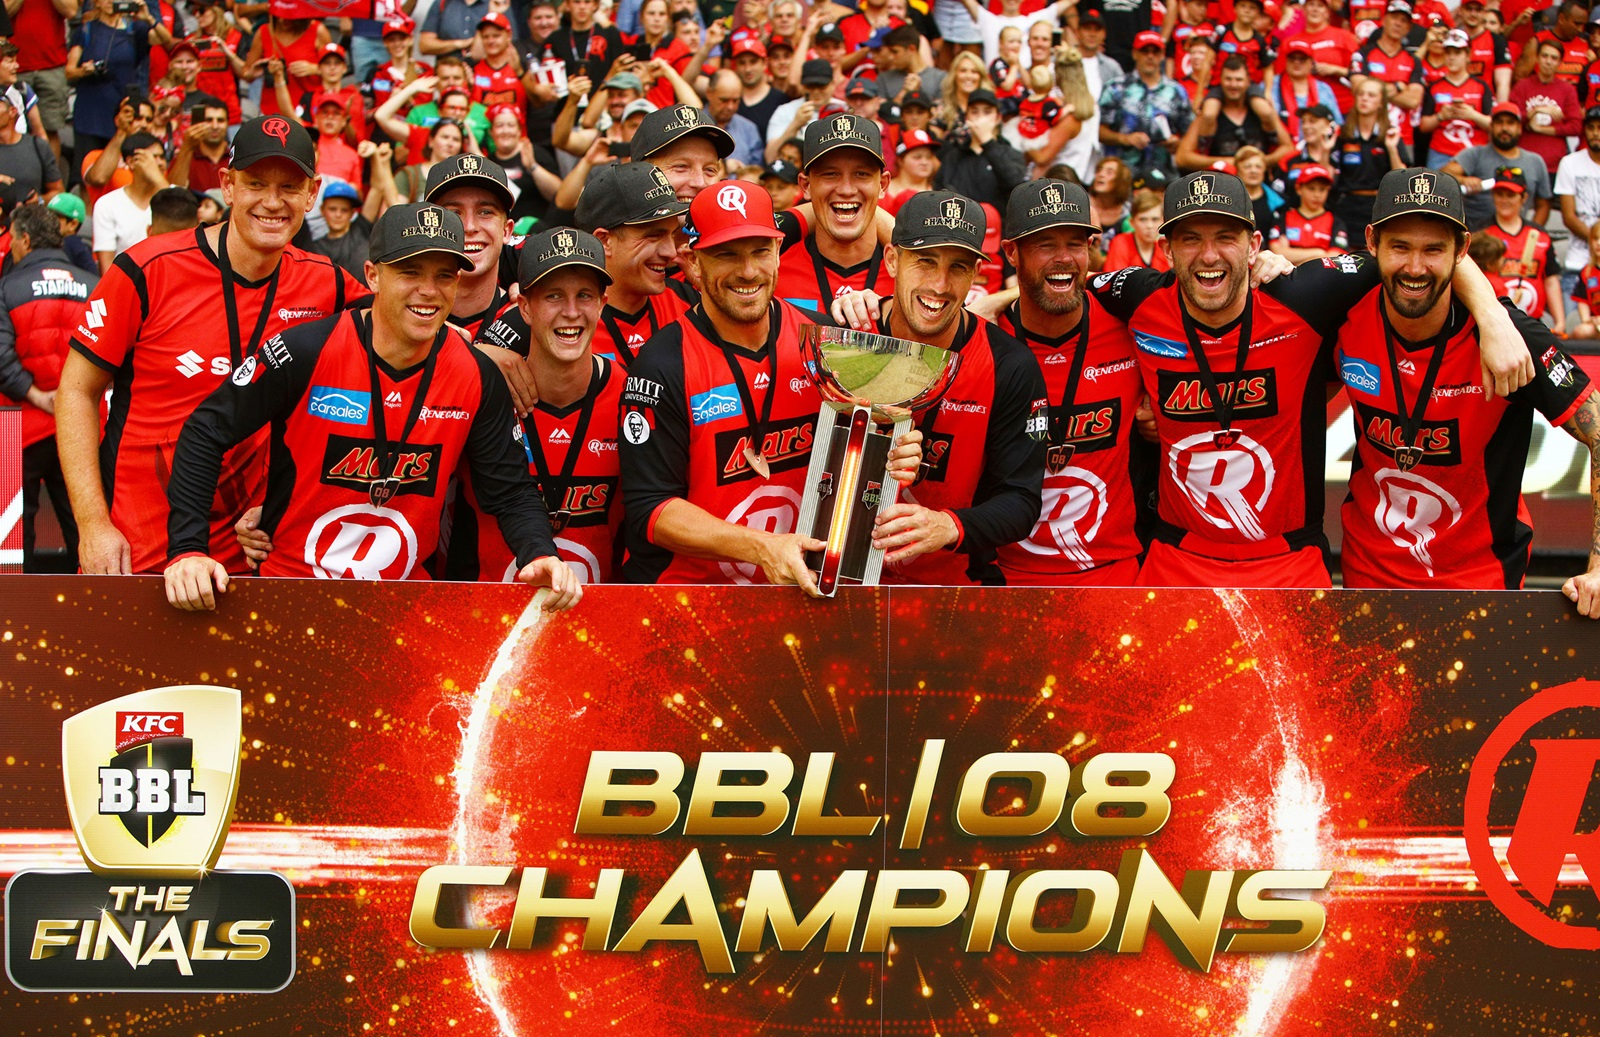 Miracle at Marvel! Stars collapse to hand Gades BBL title